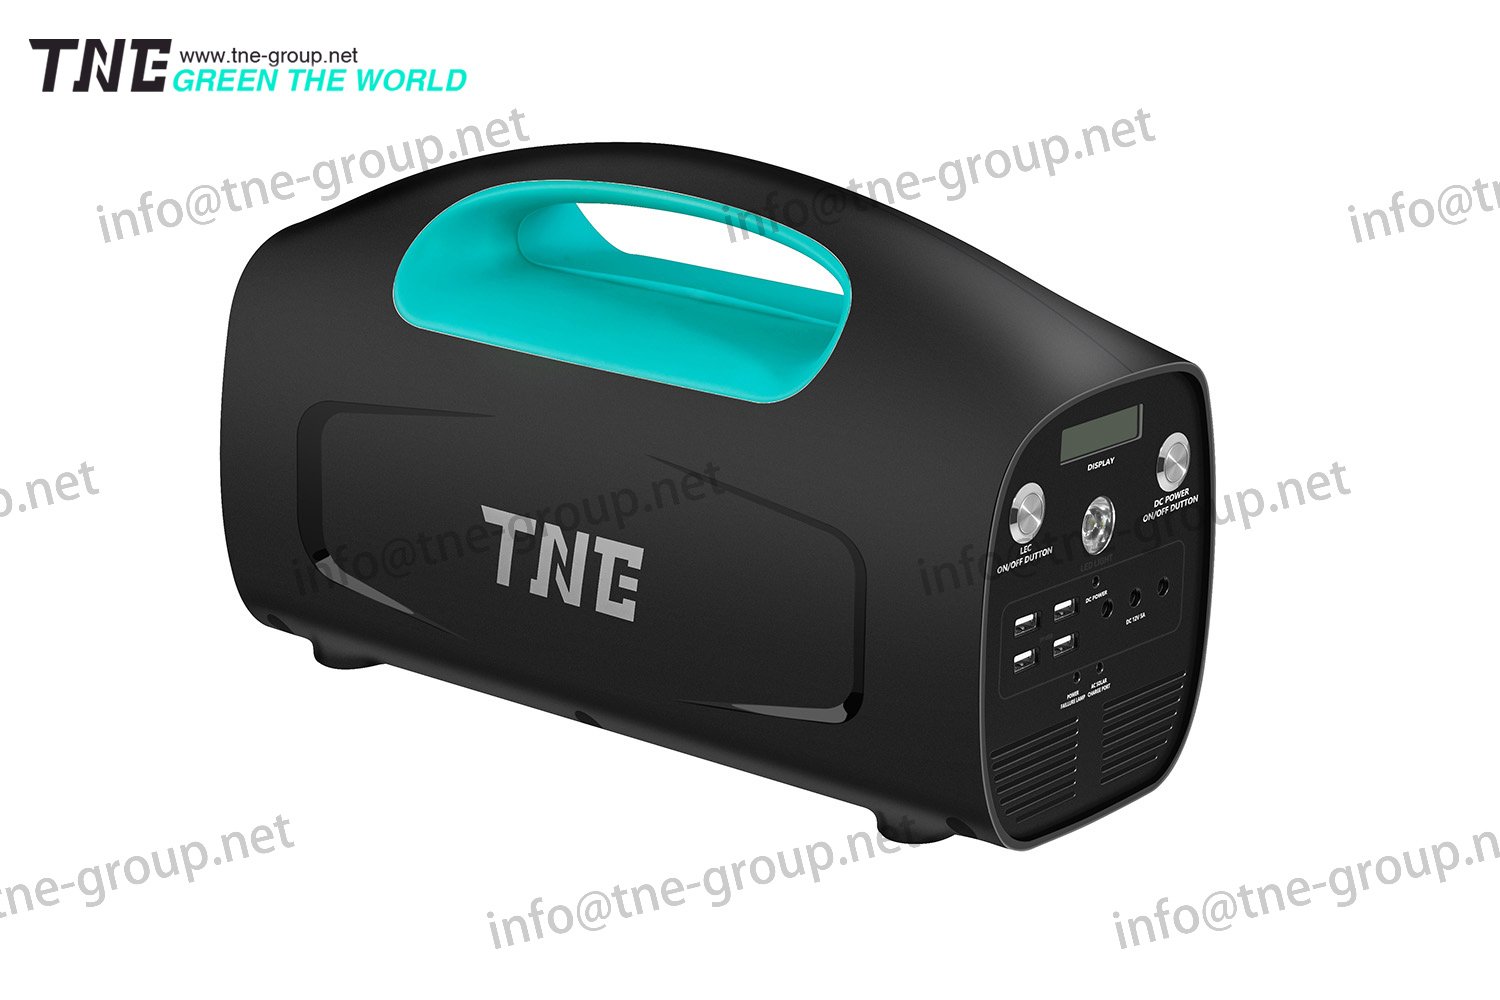 TNE RoHS certified Protable 7ah 12v home use power supply ups 7ah 12v power supply ups RoHS certifie